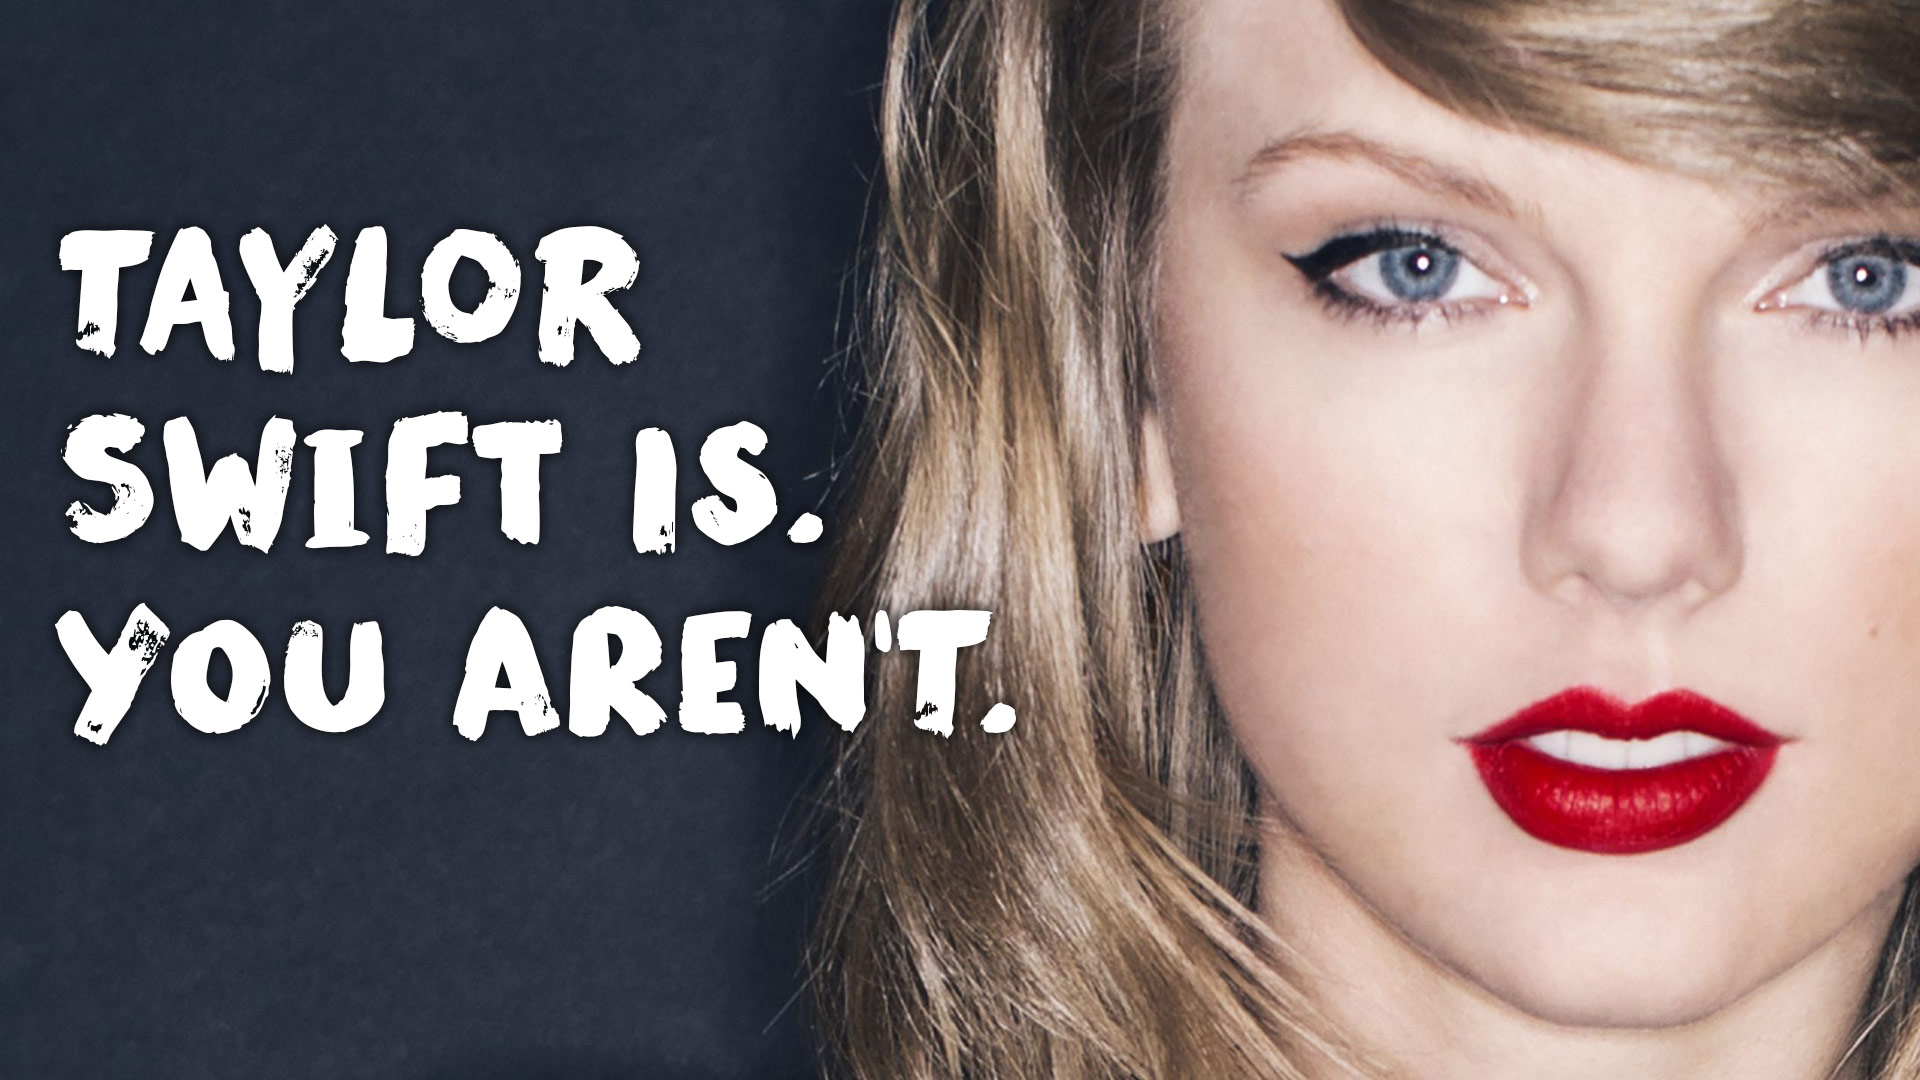 13 Things Taylor Swift Does That You Don't